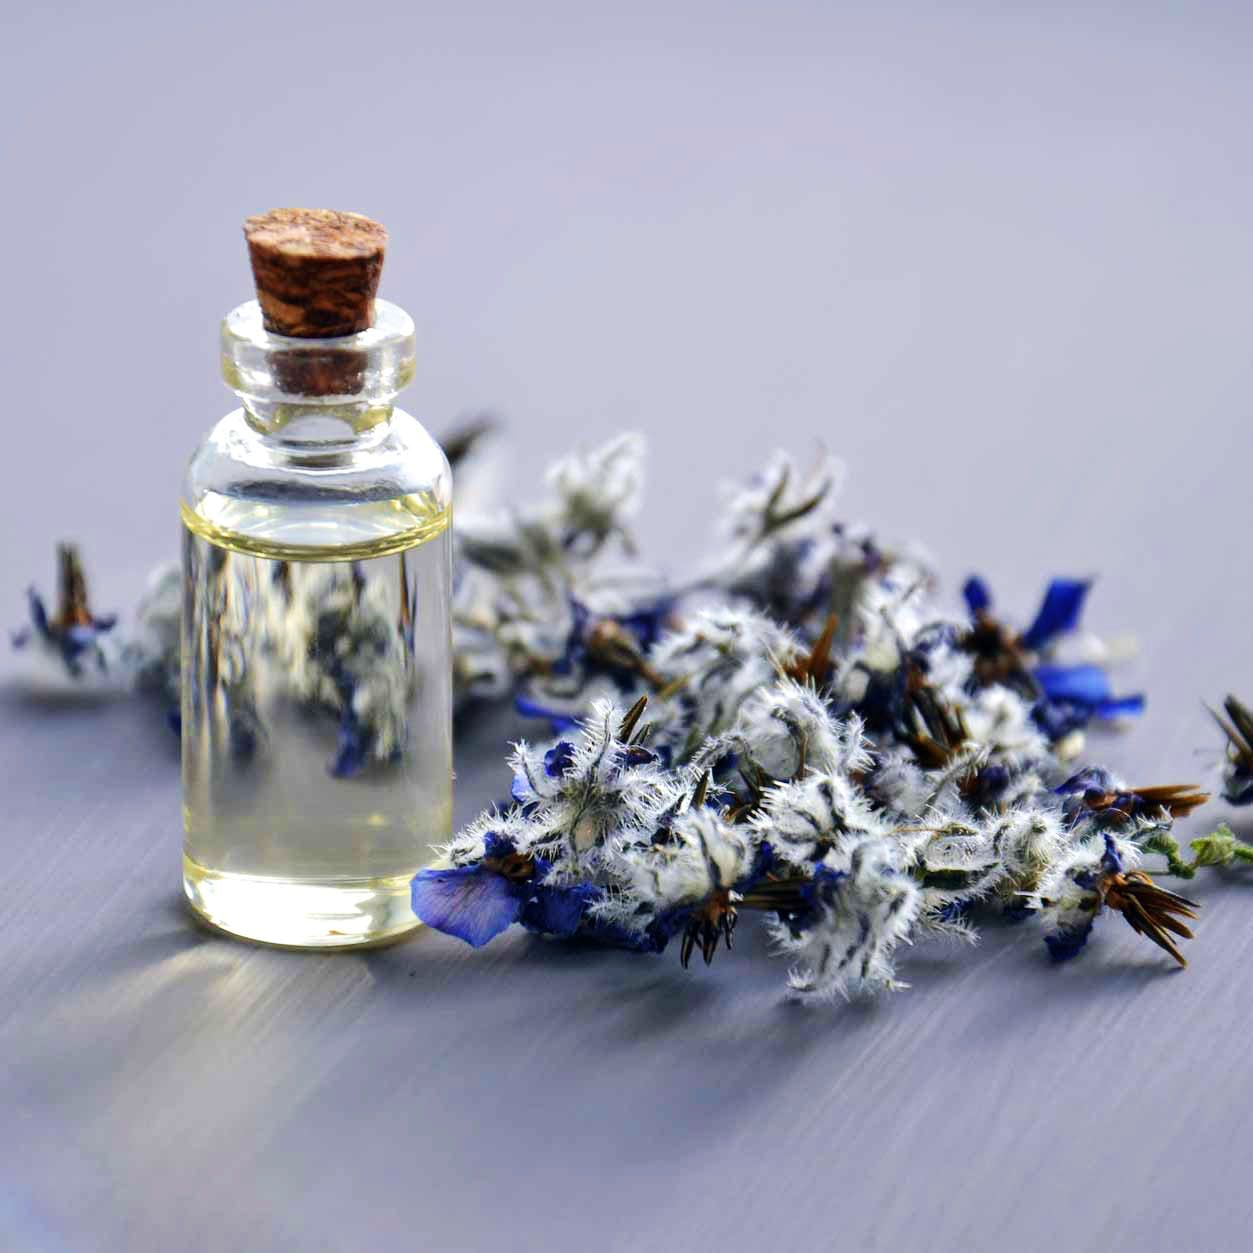 Blue,Product,Lavender,Flower,Plant,Glass,Bottle,Still life photography,English lavender